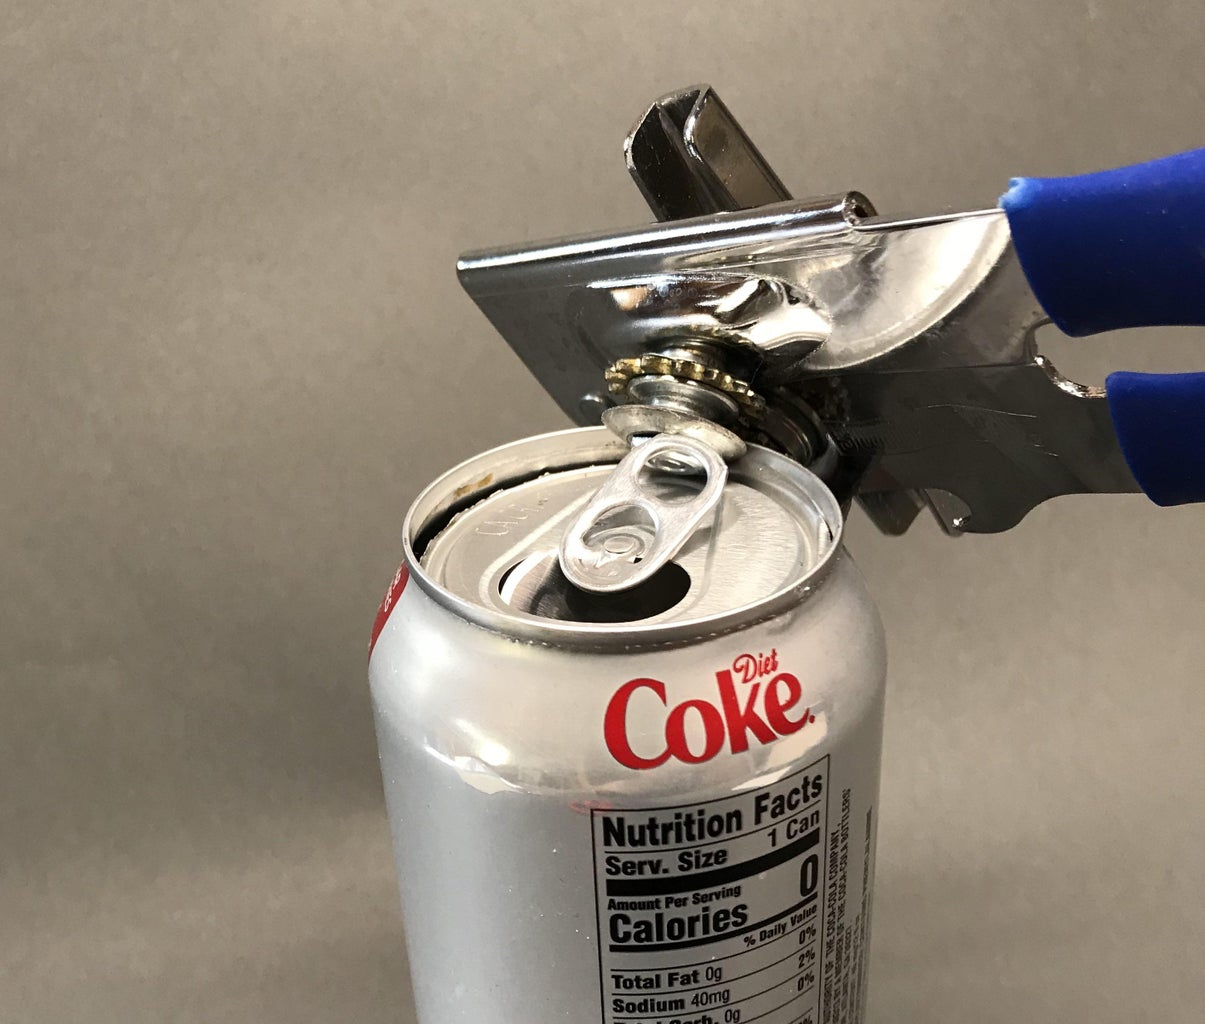 Cut Out the Top of the Coke Can